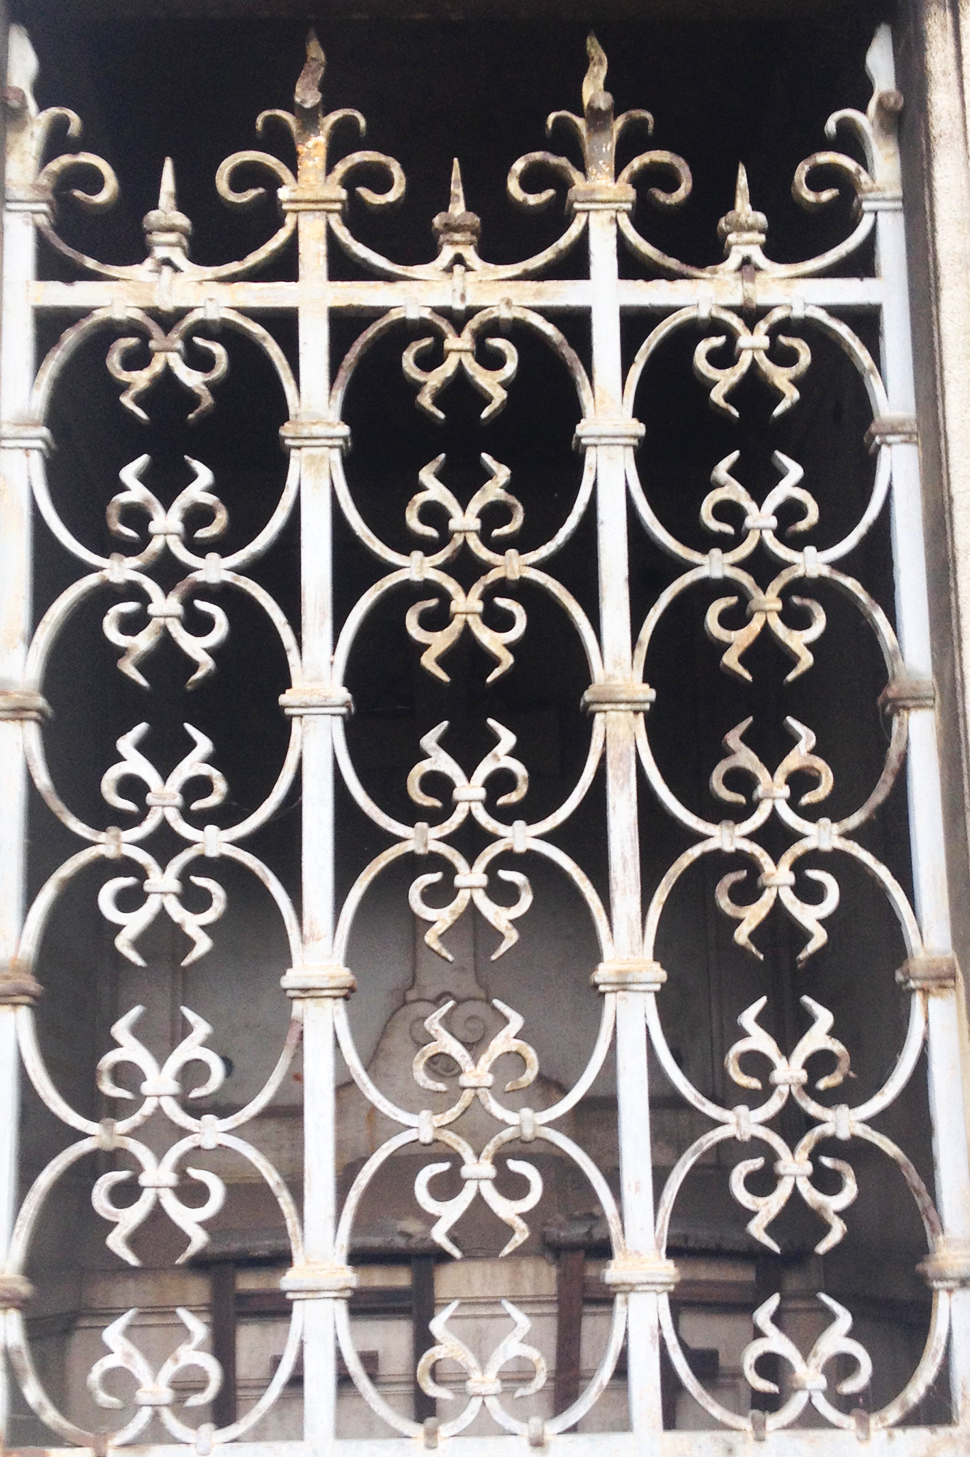 The pattern motif in this gate has an almost sinister feel to it